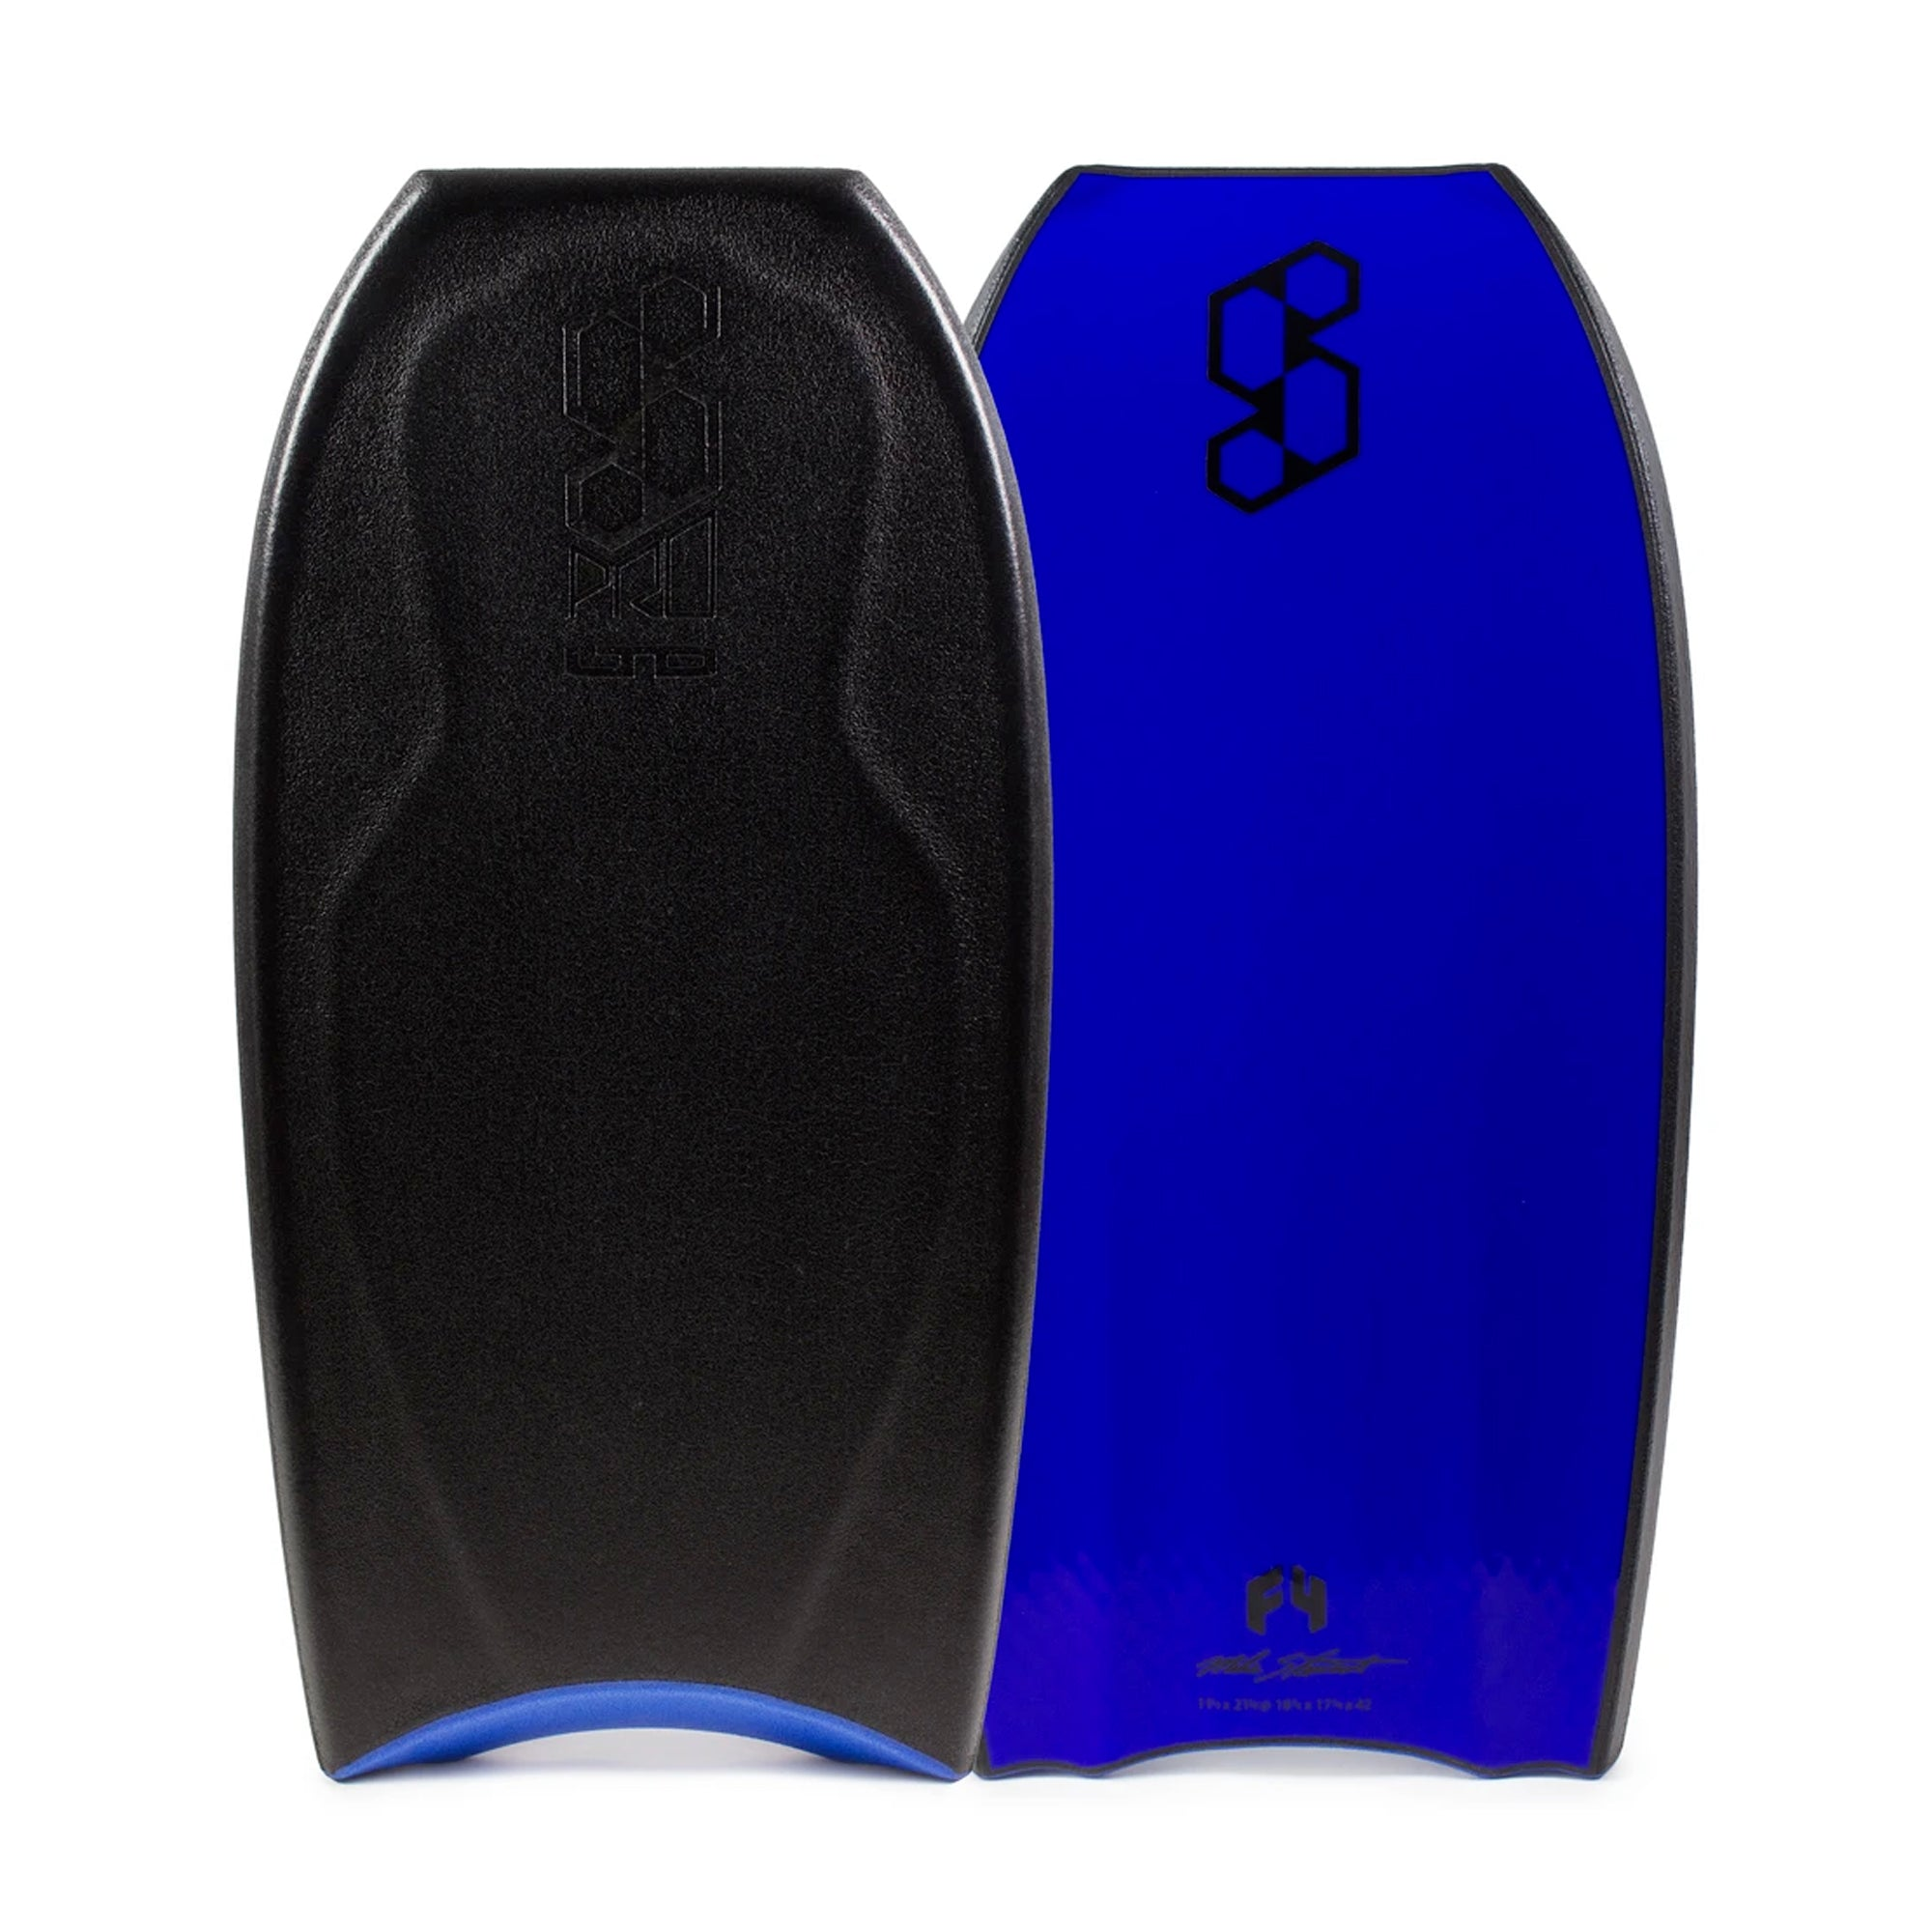 "Mike Stewart Science Pro LTD TriQuad 42"" Bodyboard - Black/Electric Blue"